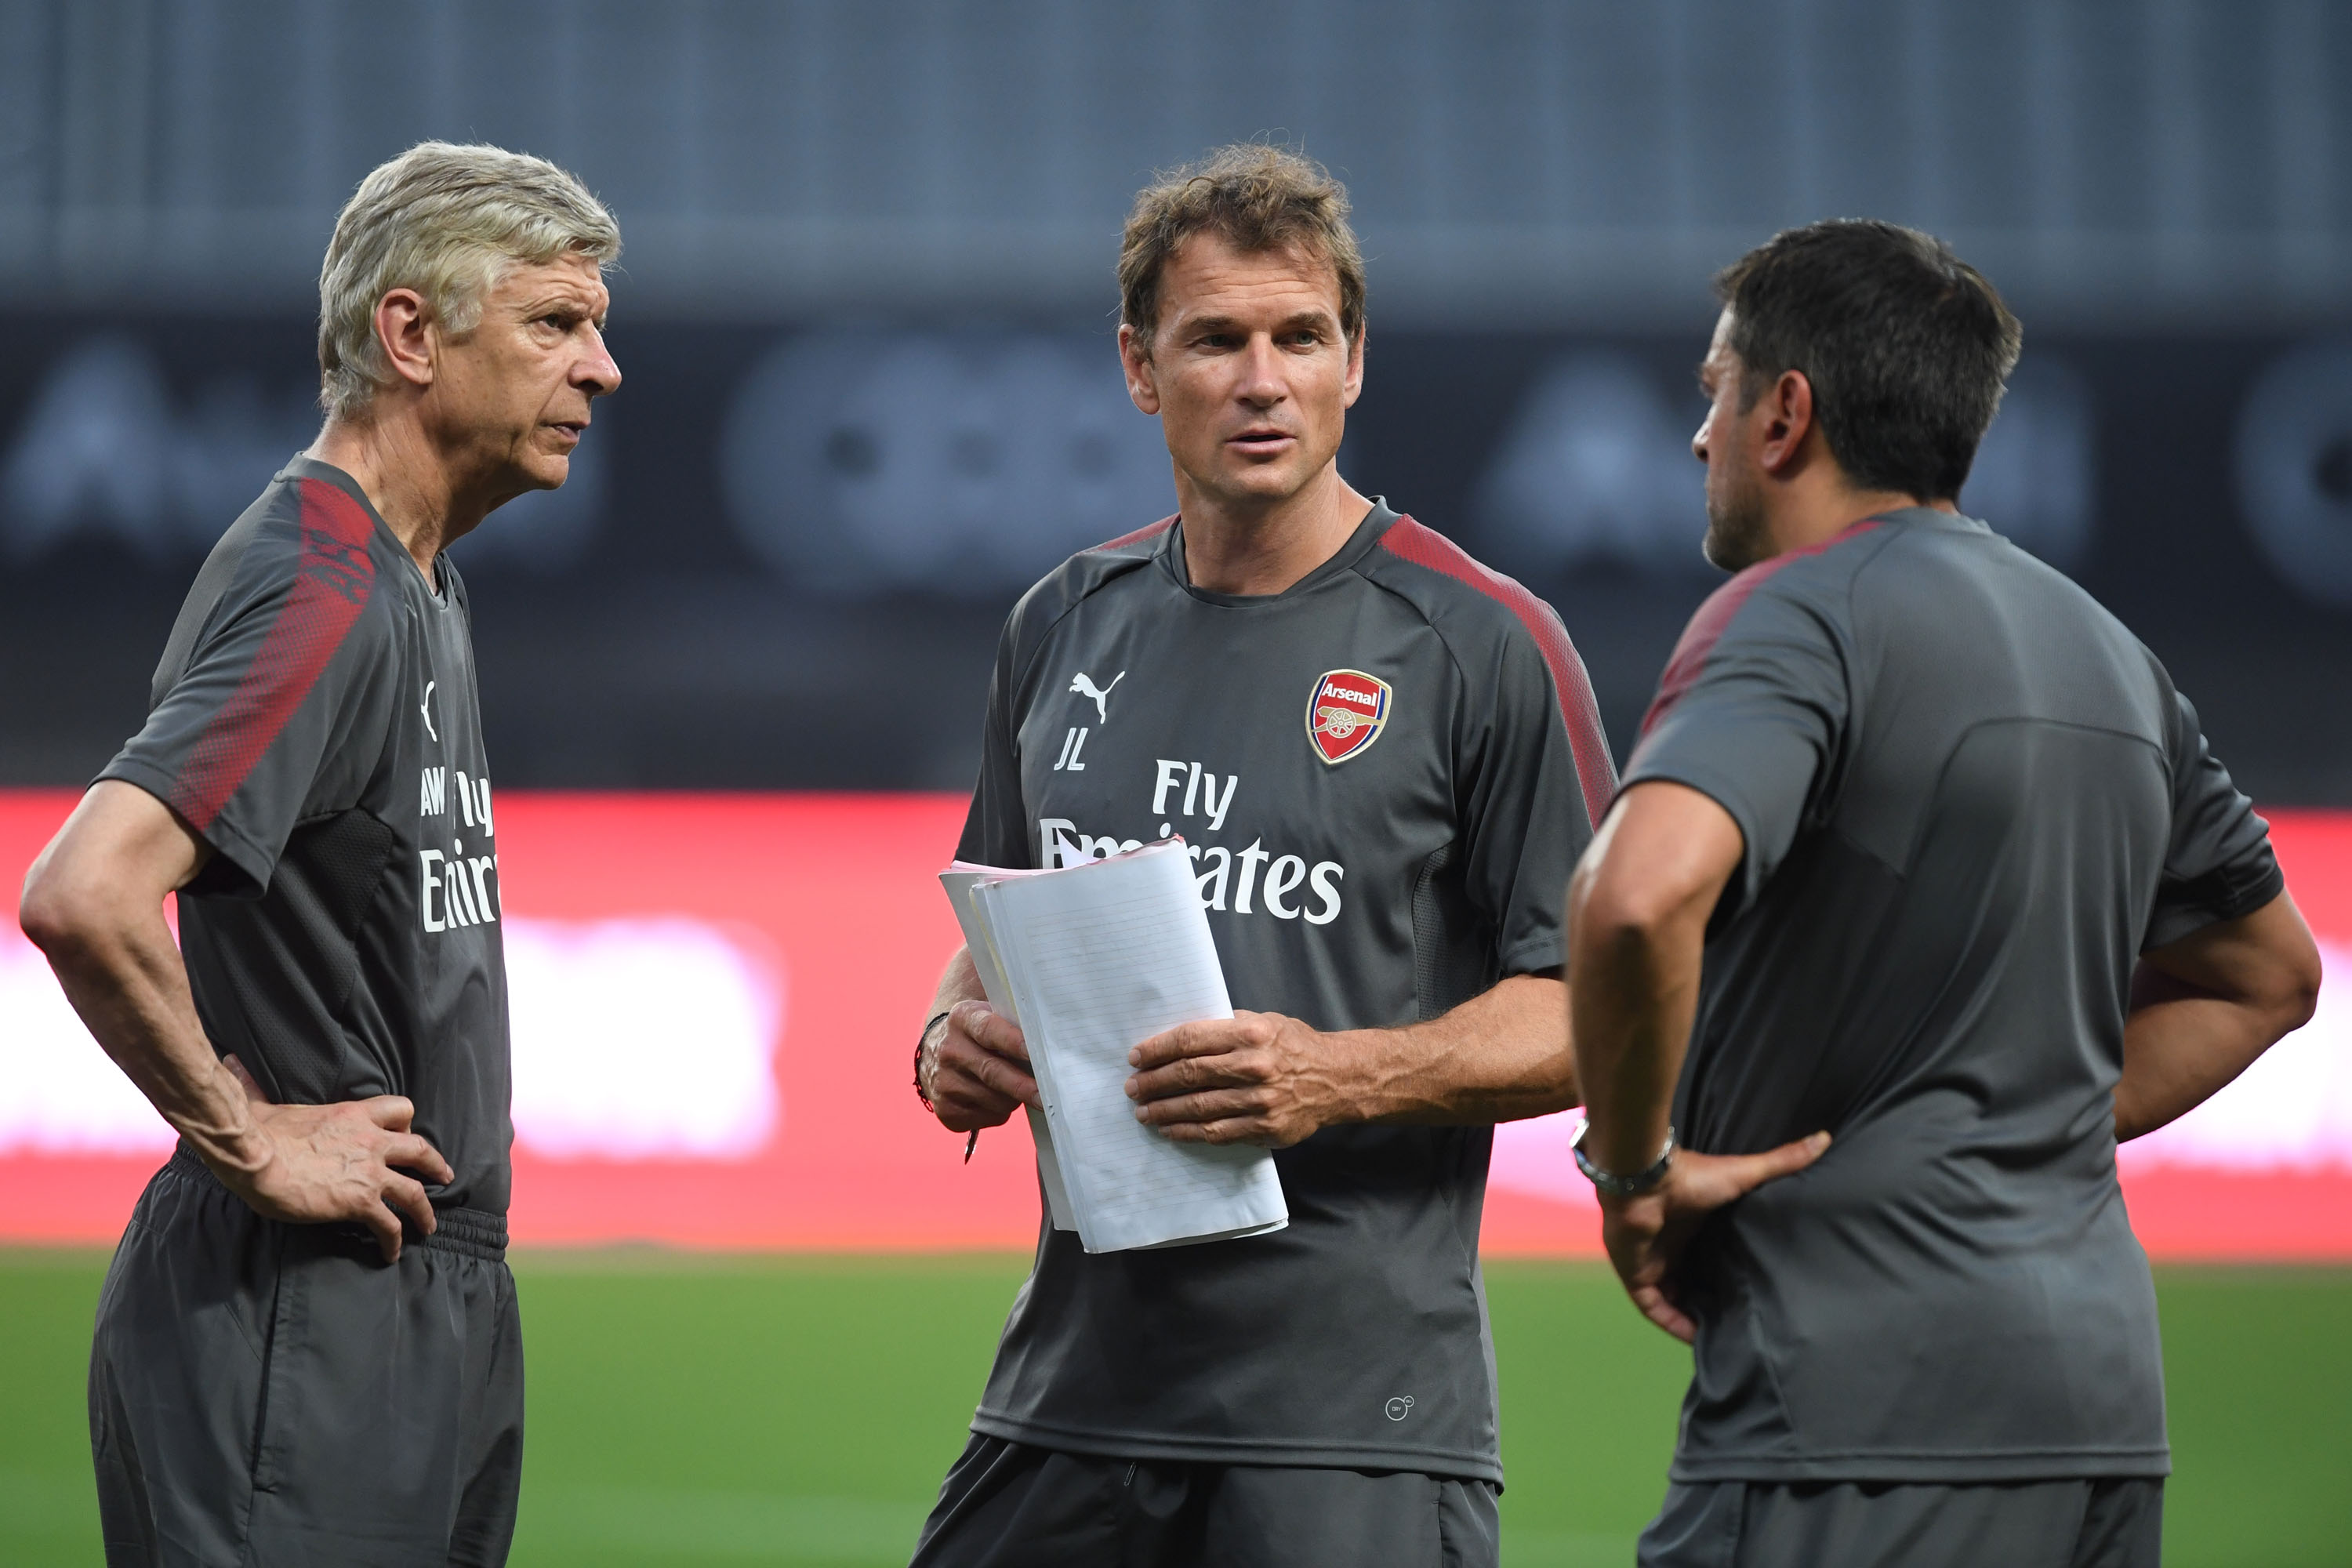 Arsenal will benefit from Jens Lehmann discipline, says Robert Pires